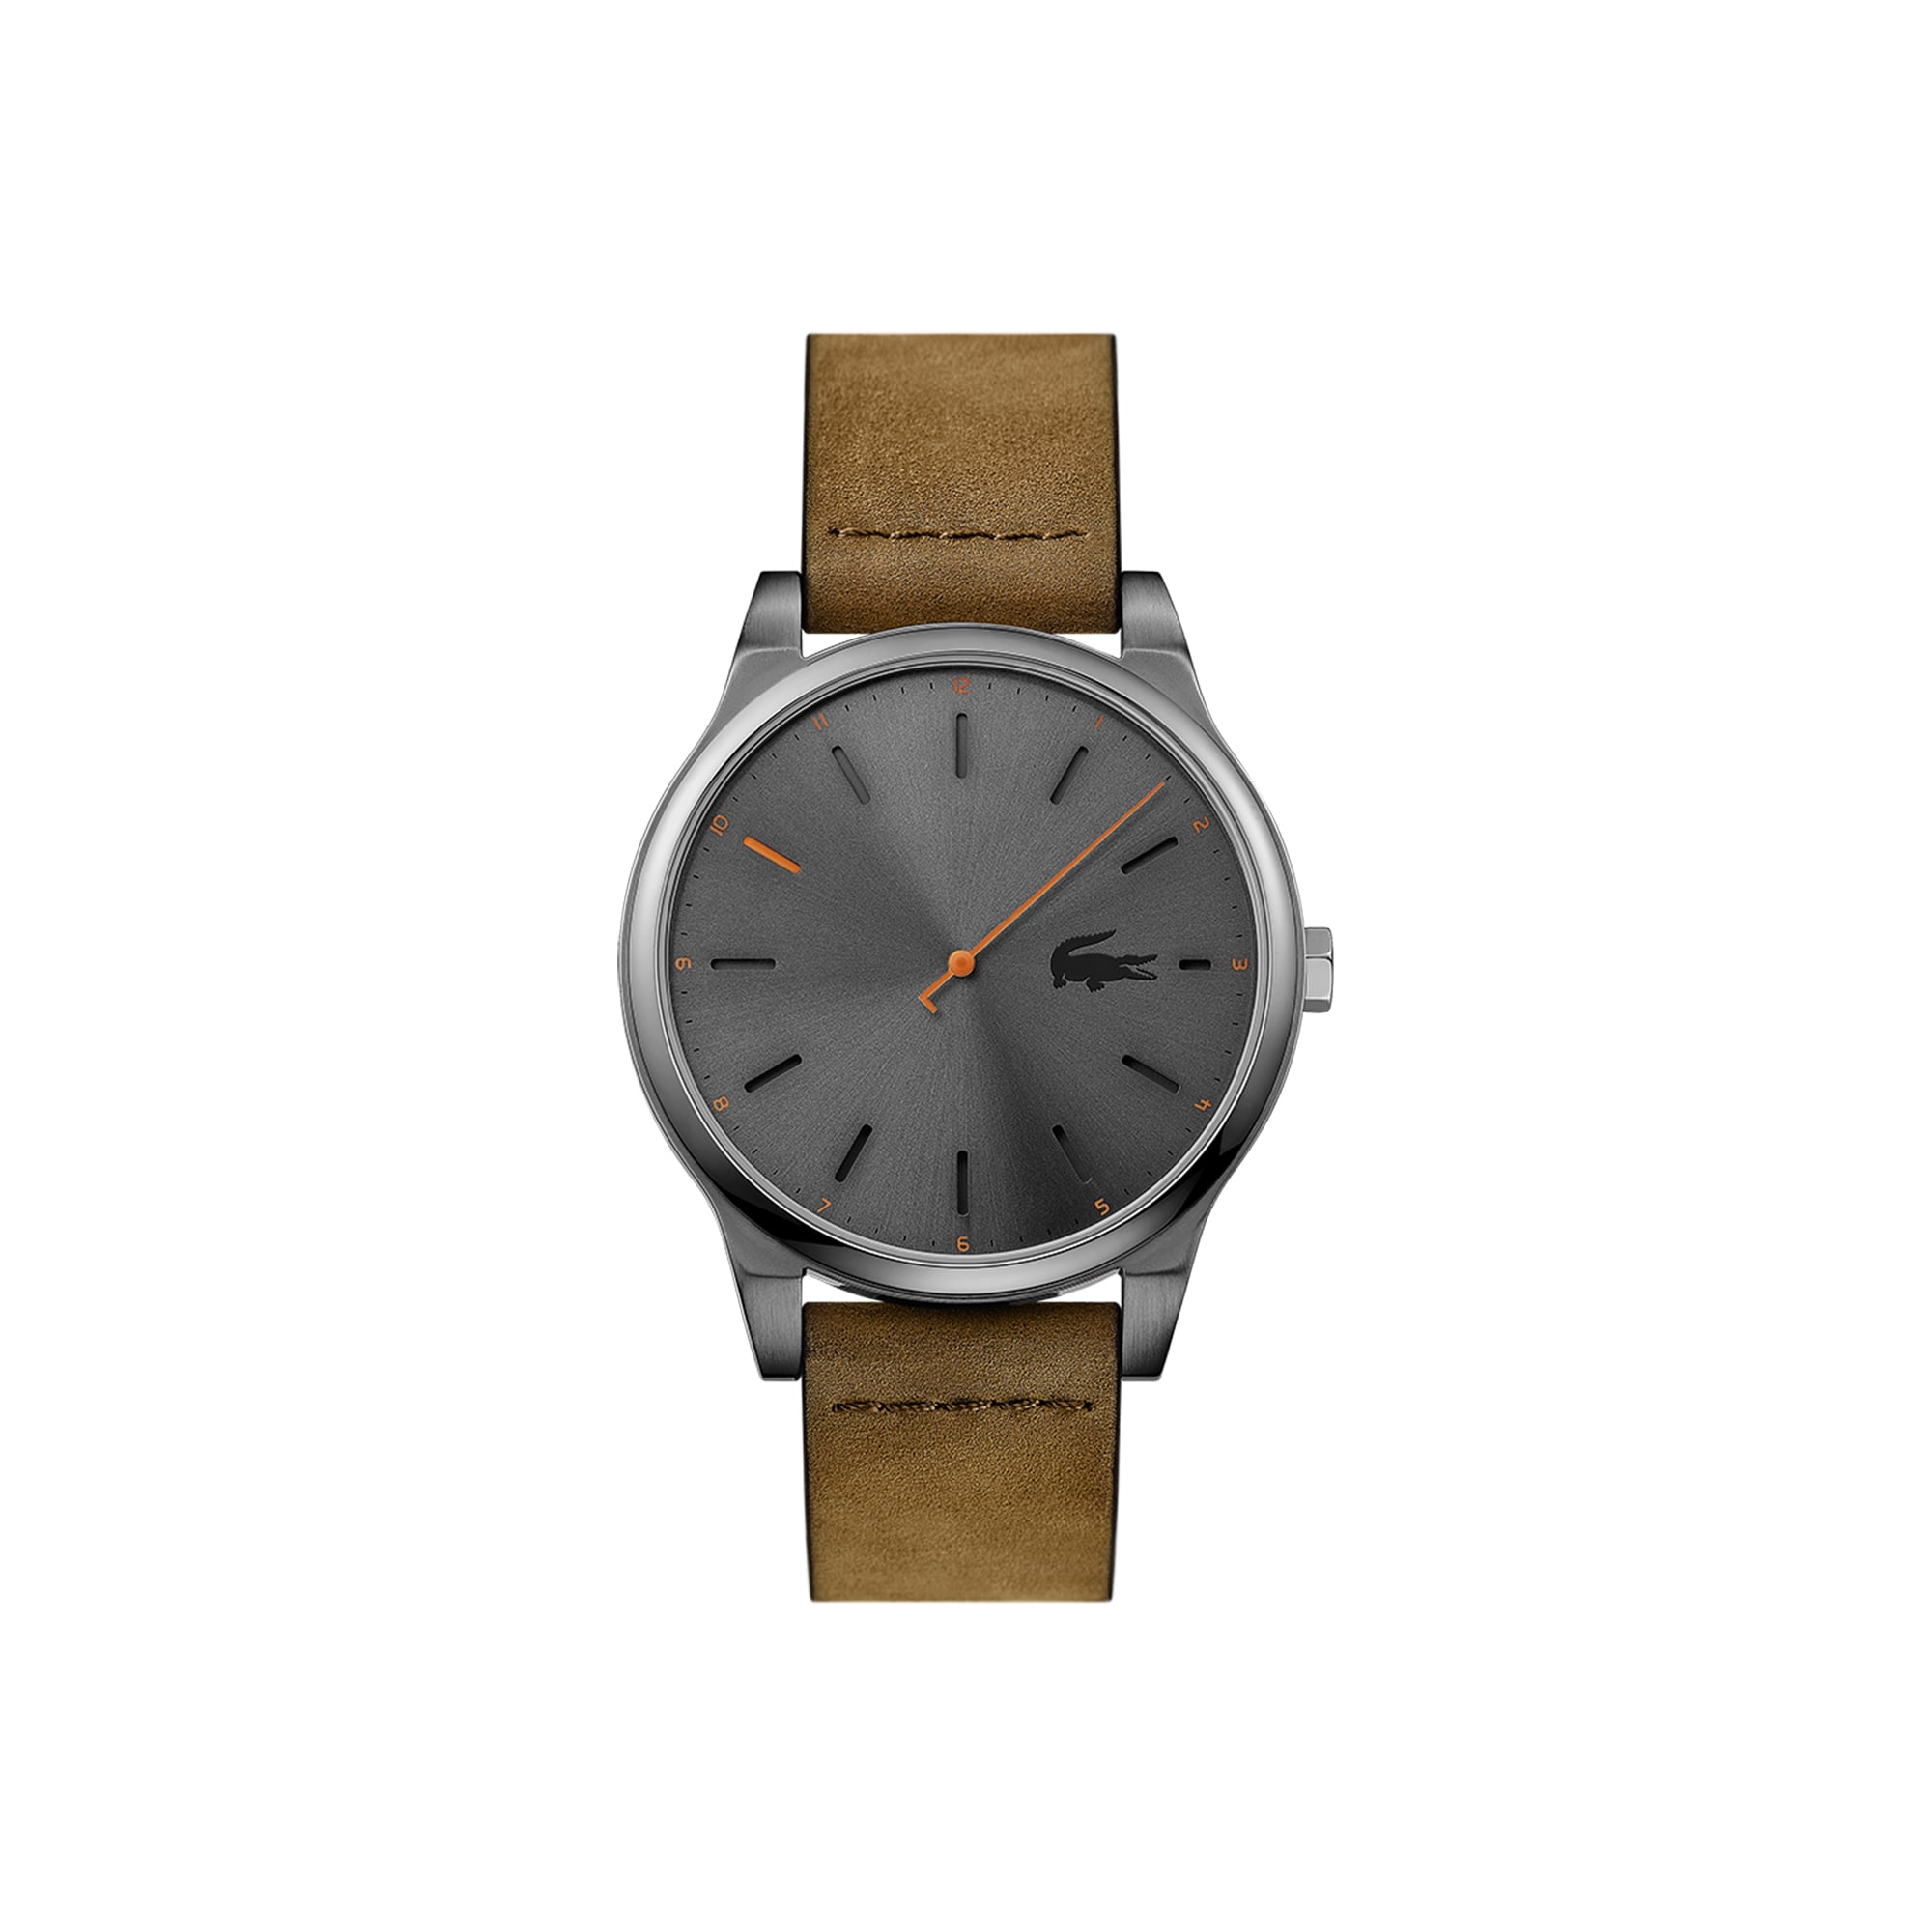 f99897484426 Men s Kyoto Watch with Brown Leather Strap